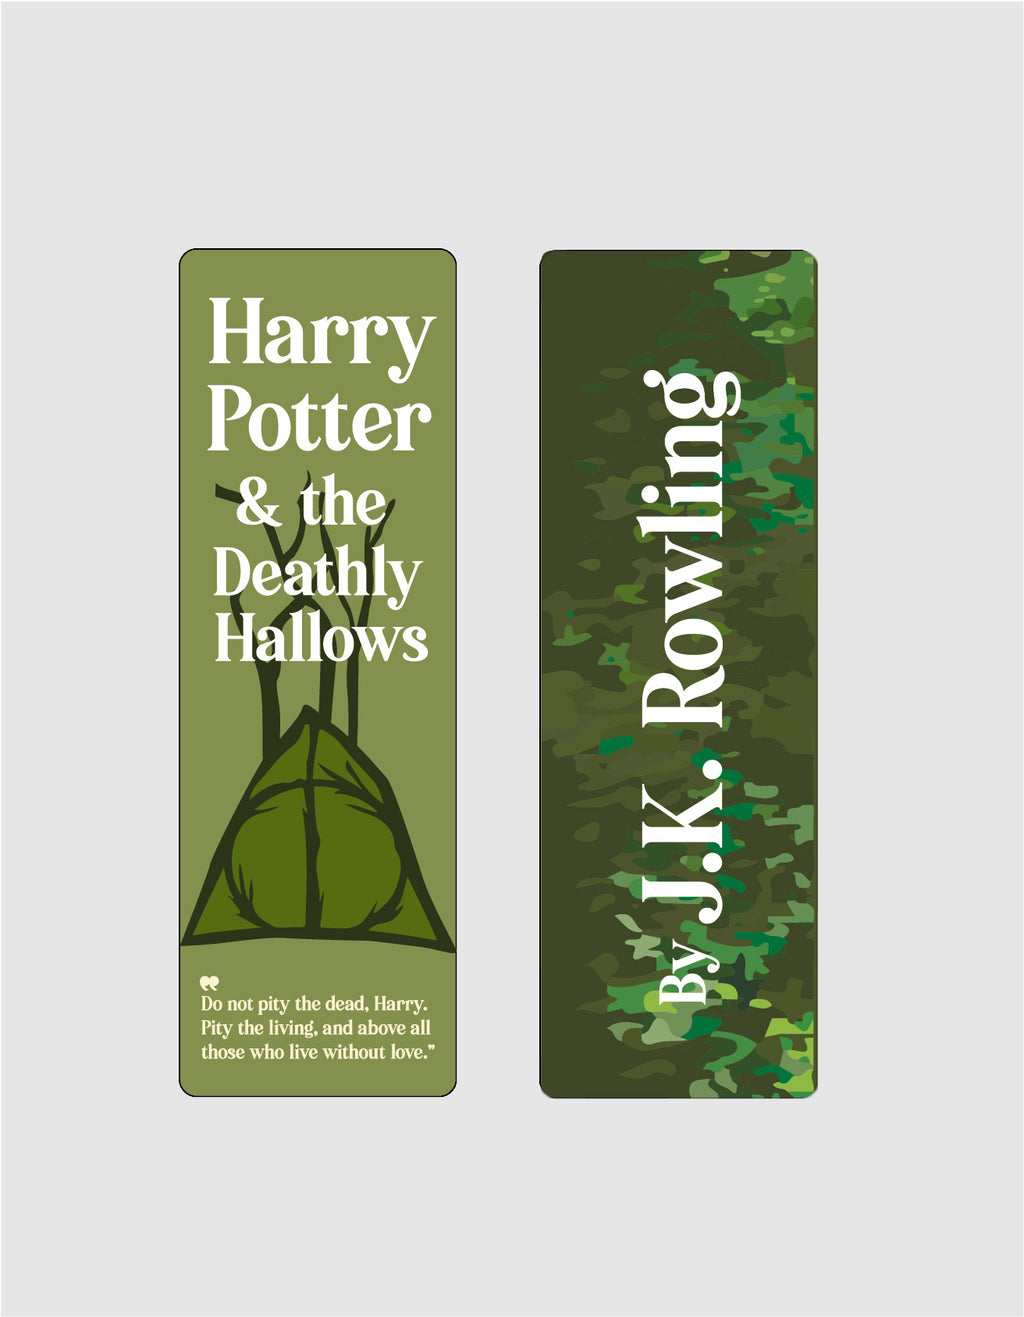 Harry Potter and the Deathly Hallows by J.K. Rowling Bookmark